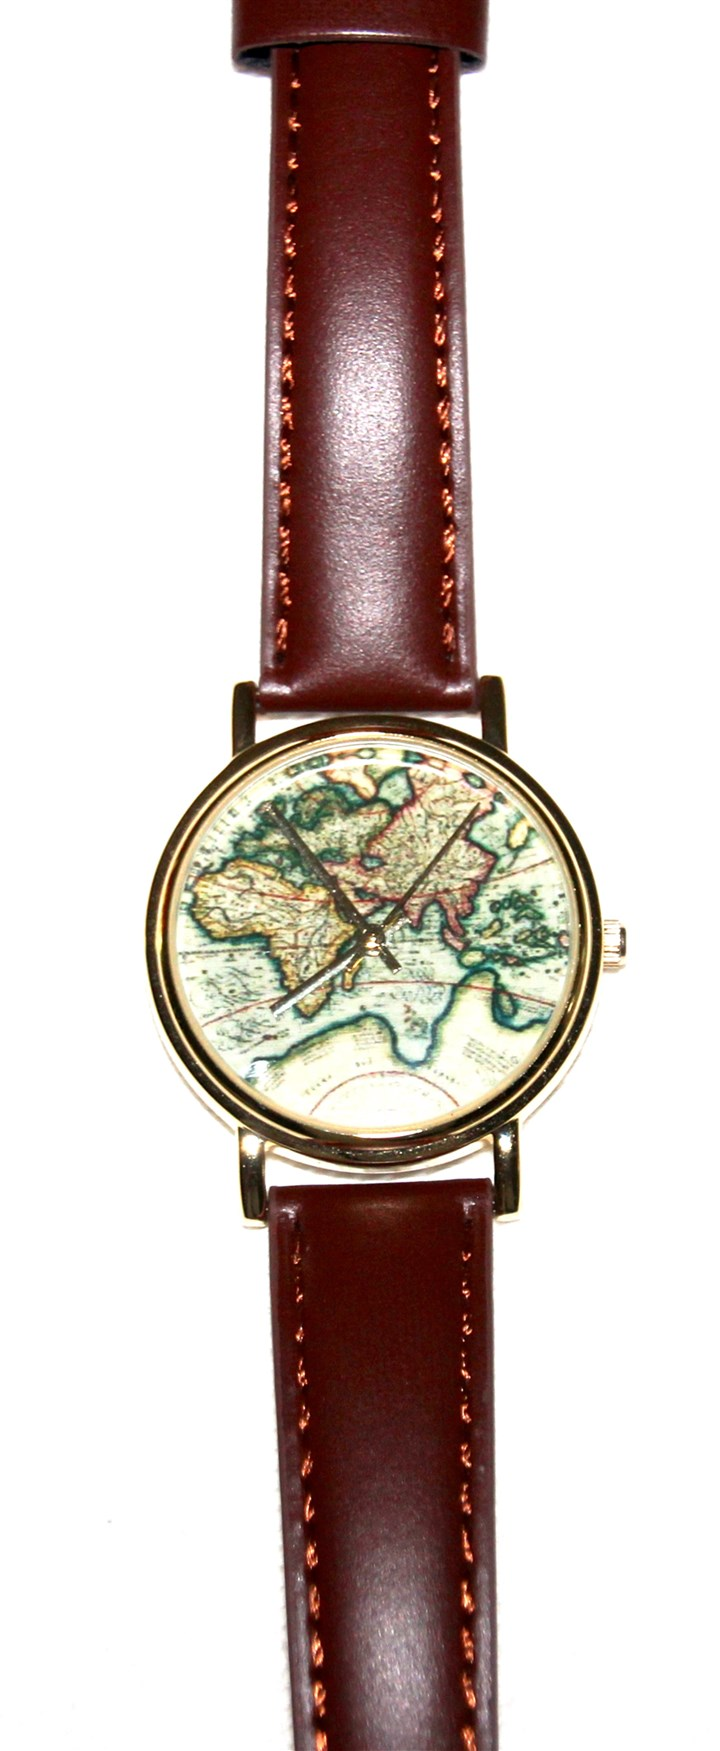 Watch Urban Outfitters' Around the World leather watch retails for $34.